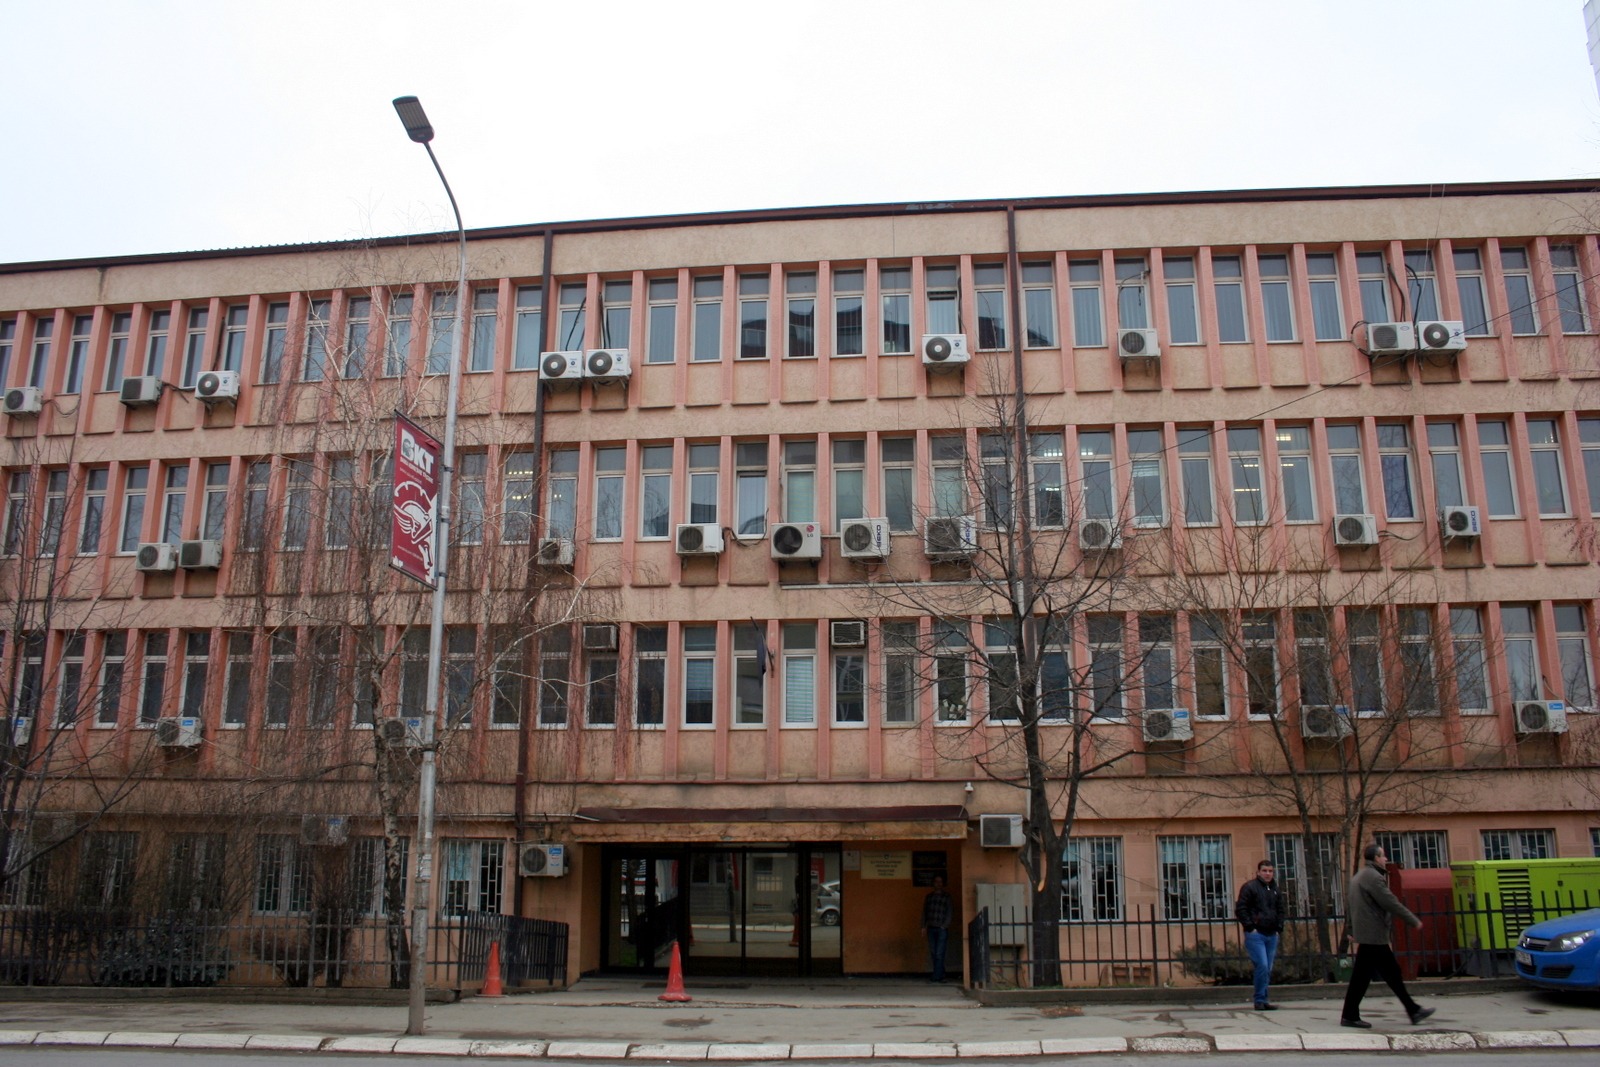 http://upload.wikimedia.org/wikipedia/commons/c/cc/Supreme_Court_of_Kosovo.JPG?169